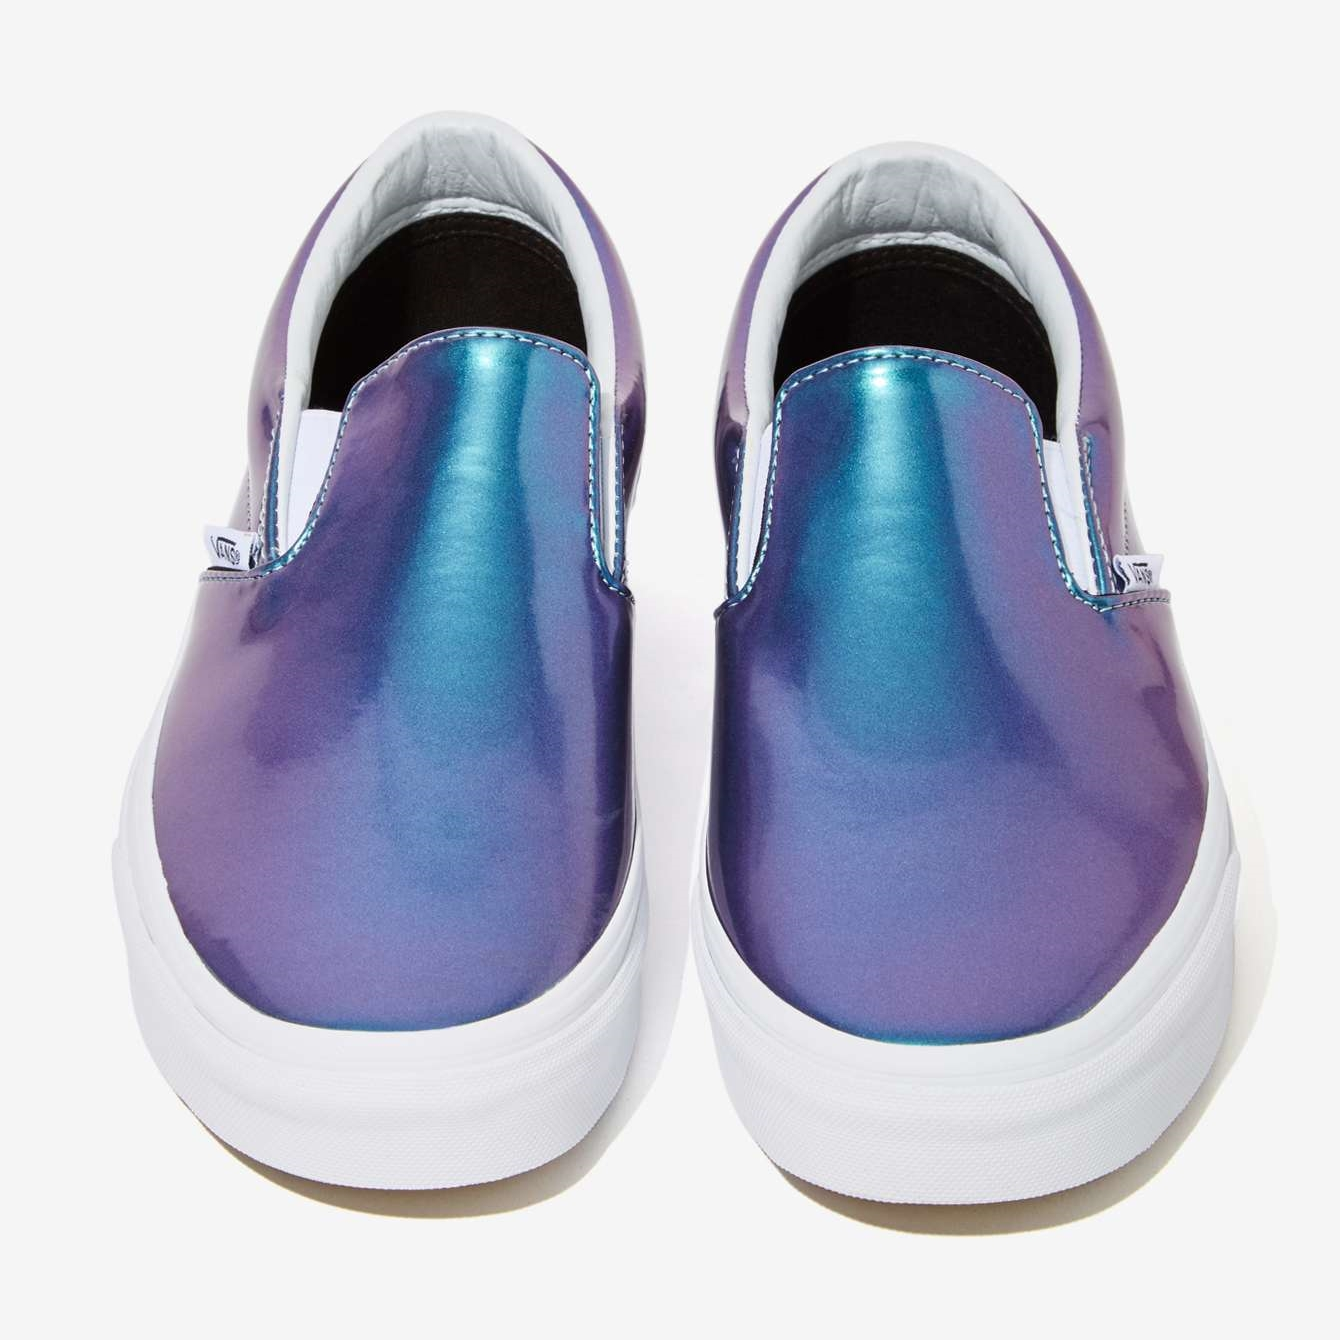 Vans  Iridescent. Love the shine. Sure to get a lot of stares!